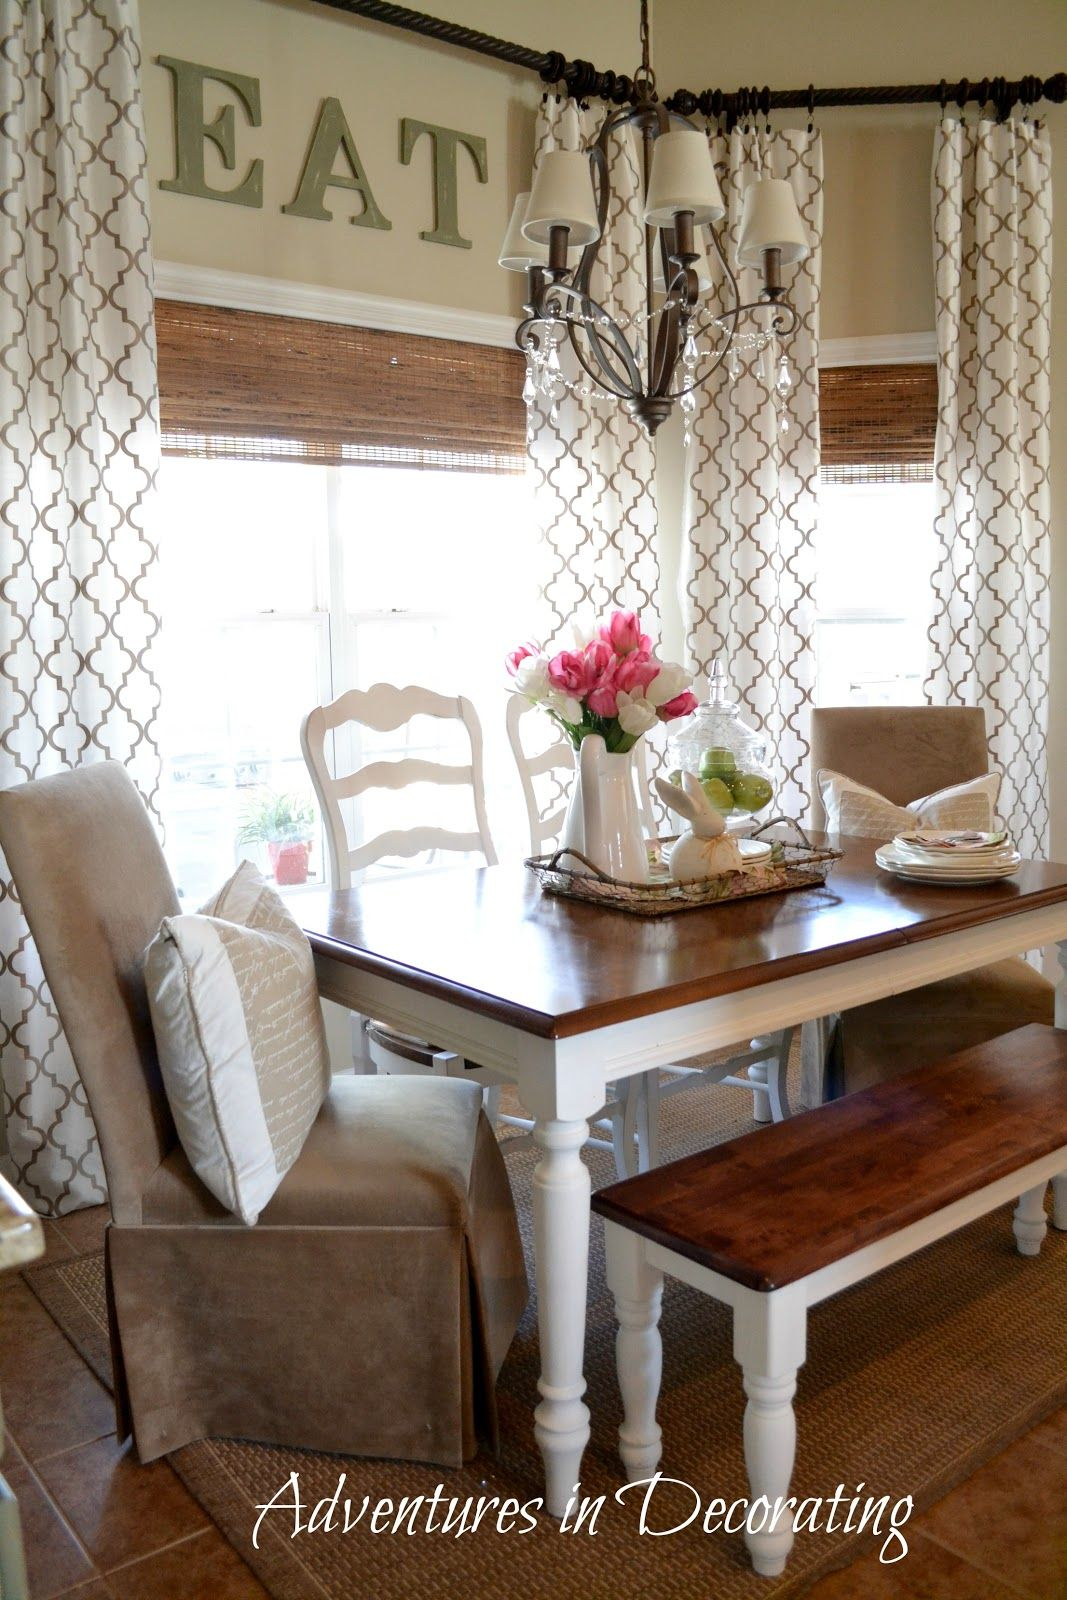 Bay Window Farmhouse Table Bench And Different Chairs LOVE It ALL Kitchen CurtainsKitchen WindowsFarmhouse CurtainsDining Room